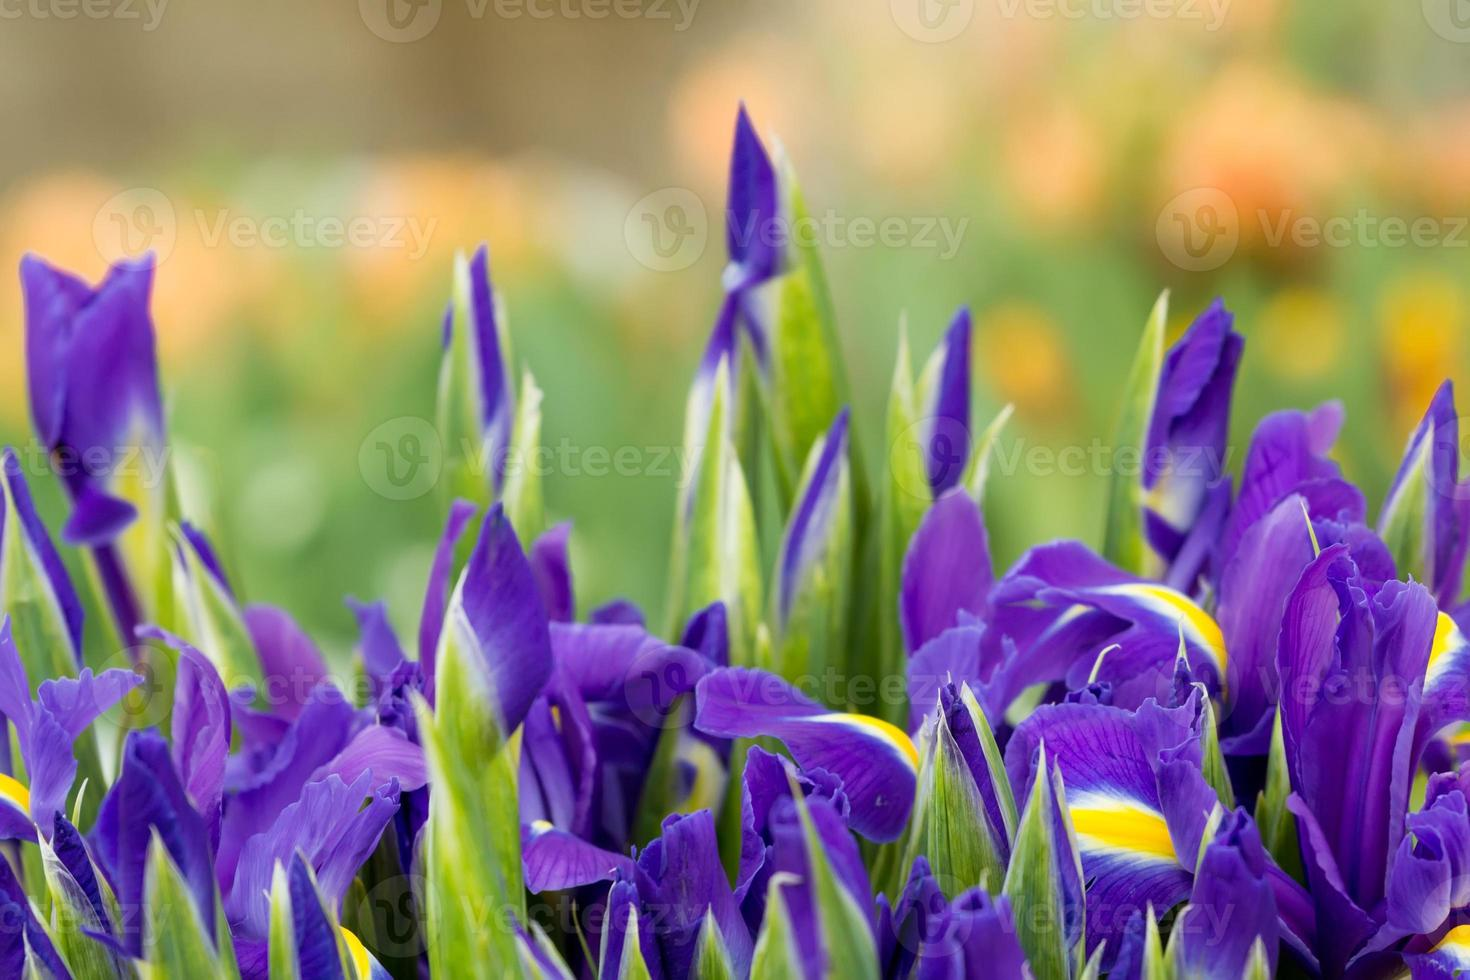 Iris live growing spring plants with opened purple flowers background photo